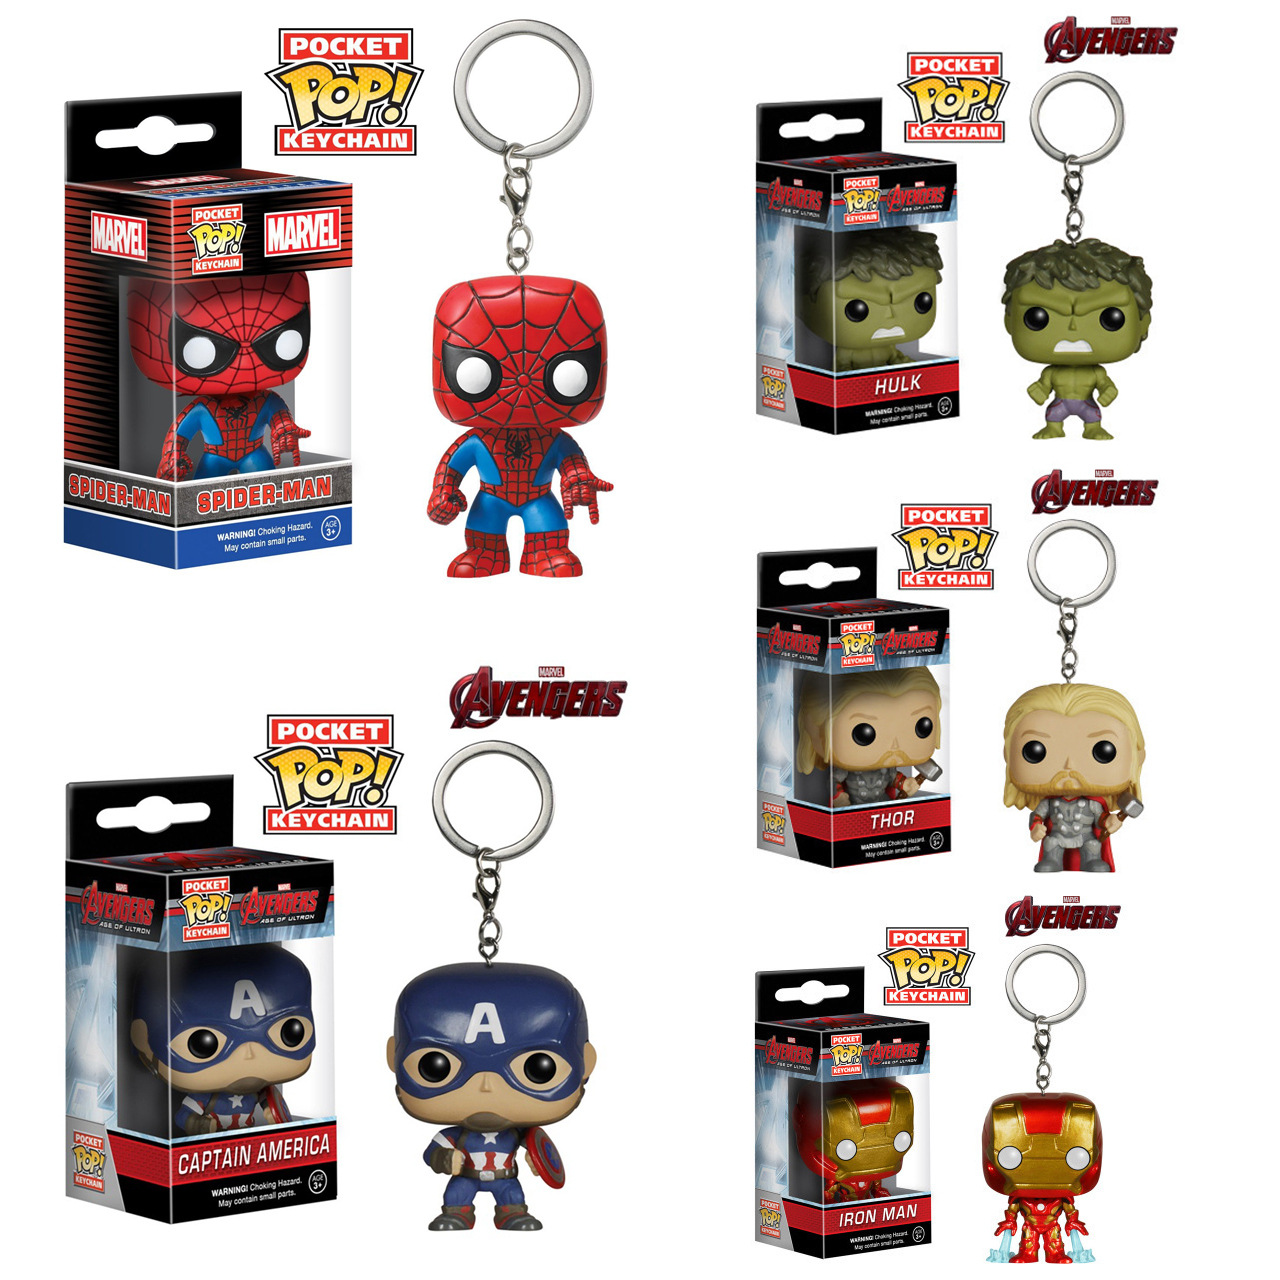 5pcs/lot FUNKO POP Pocket Marvel Avengers Keychain Hulk Iron Man Spiderman Captain America Thor PVC Action Figure KeyRing Toy  funko pop marvel the hulk no 08 red hulk no 31 iron man vinly bobble head pvc action figure collectible model toy gift for kids